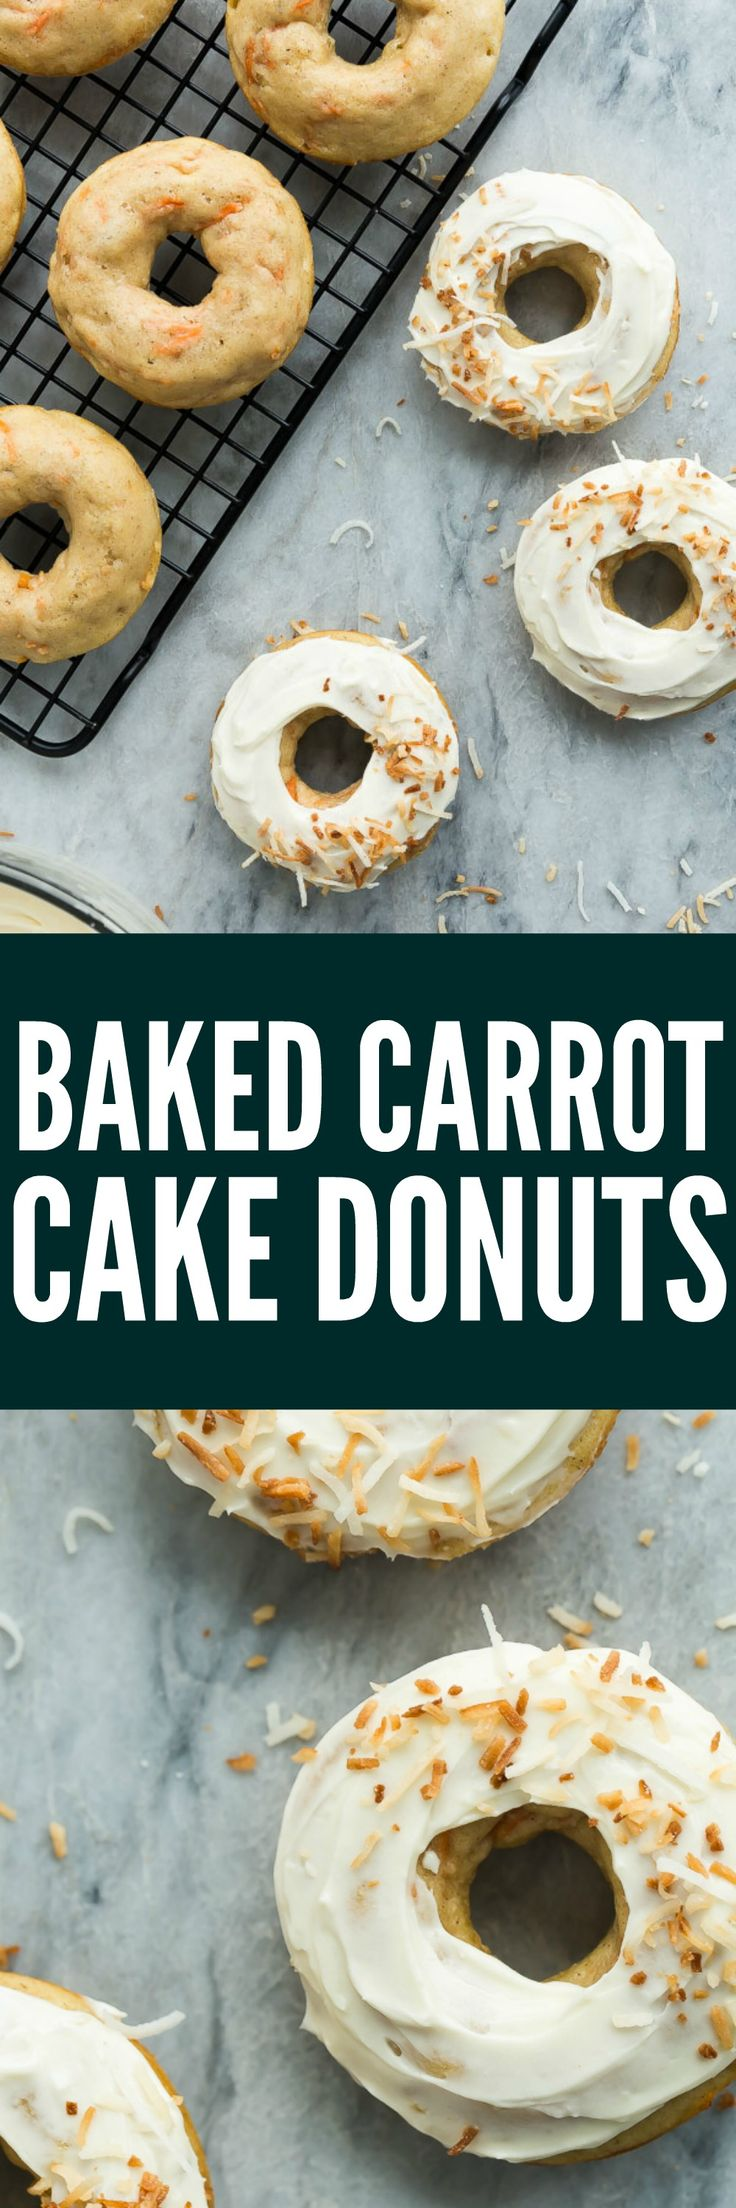 These Baked Carrot Cake Donuts with Cream Cheese Frosting are a real treat! They are healthier than traditional donuts and perfect for a Spring brunch or Easter dessert. Incredibly moist and flavourful!